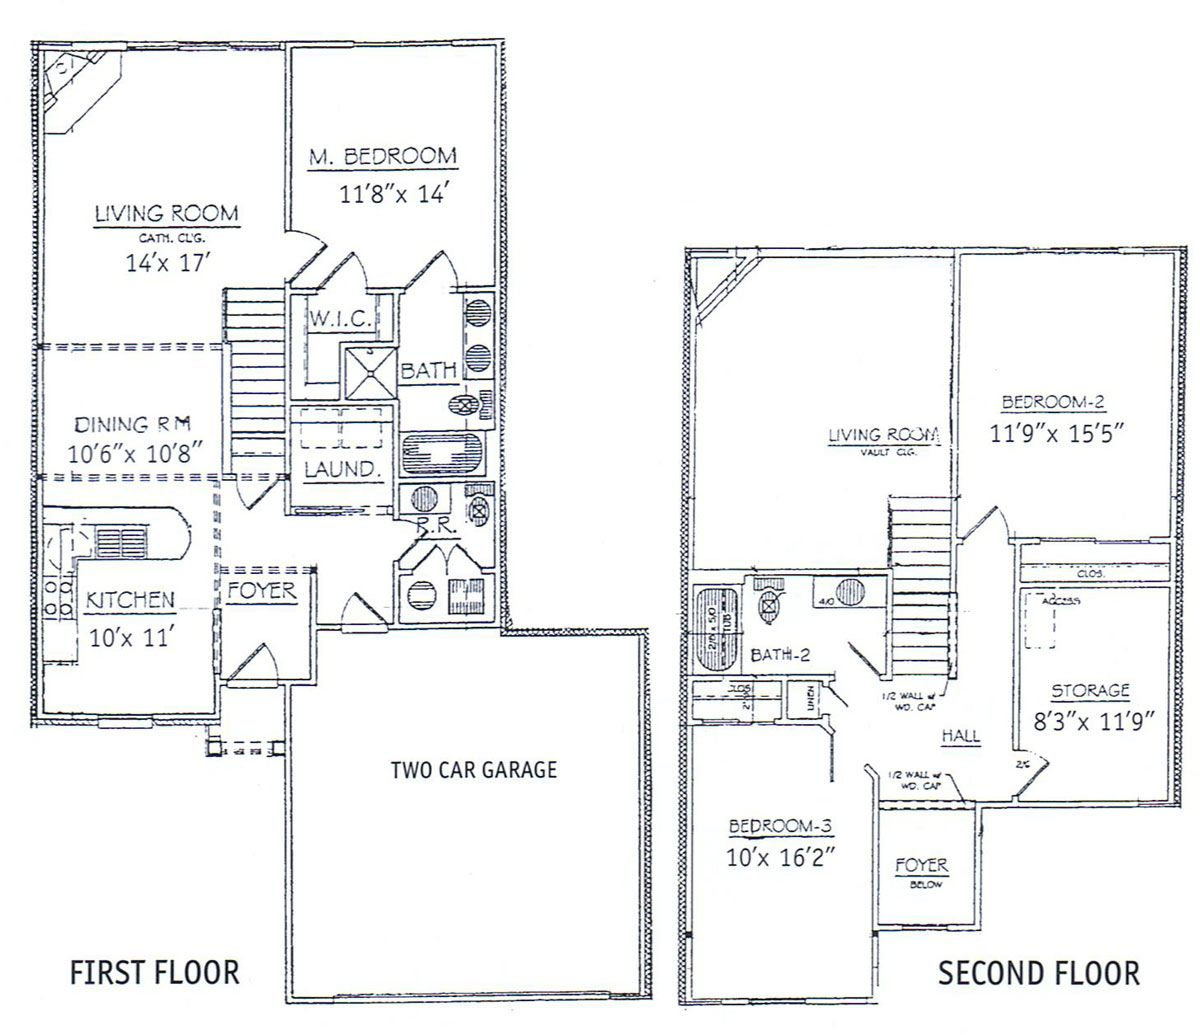 3 bedrooms floor plans 2 story bdrm basement the two 1 and 1 2 story floor plans